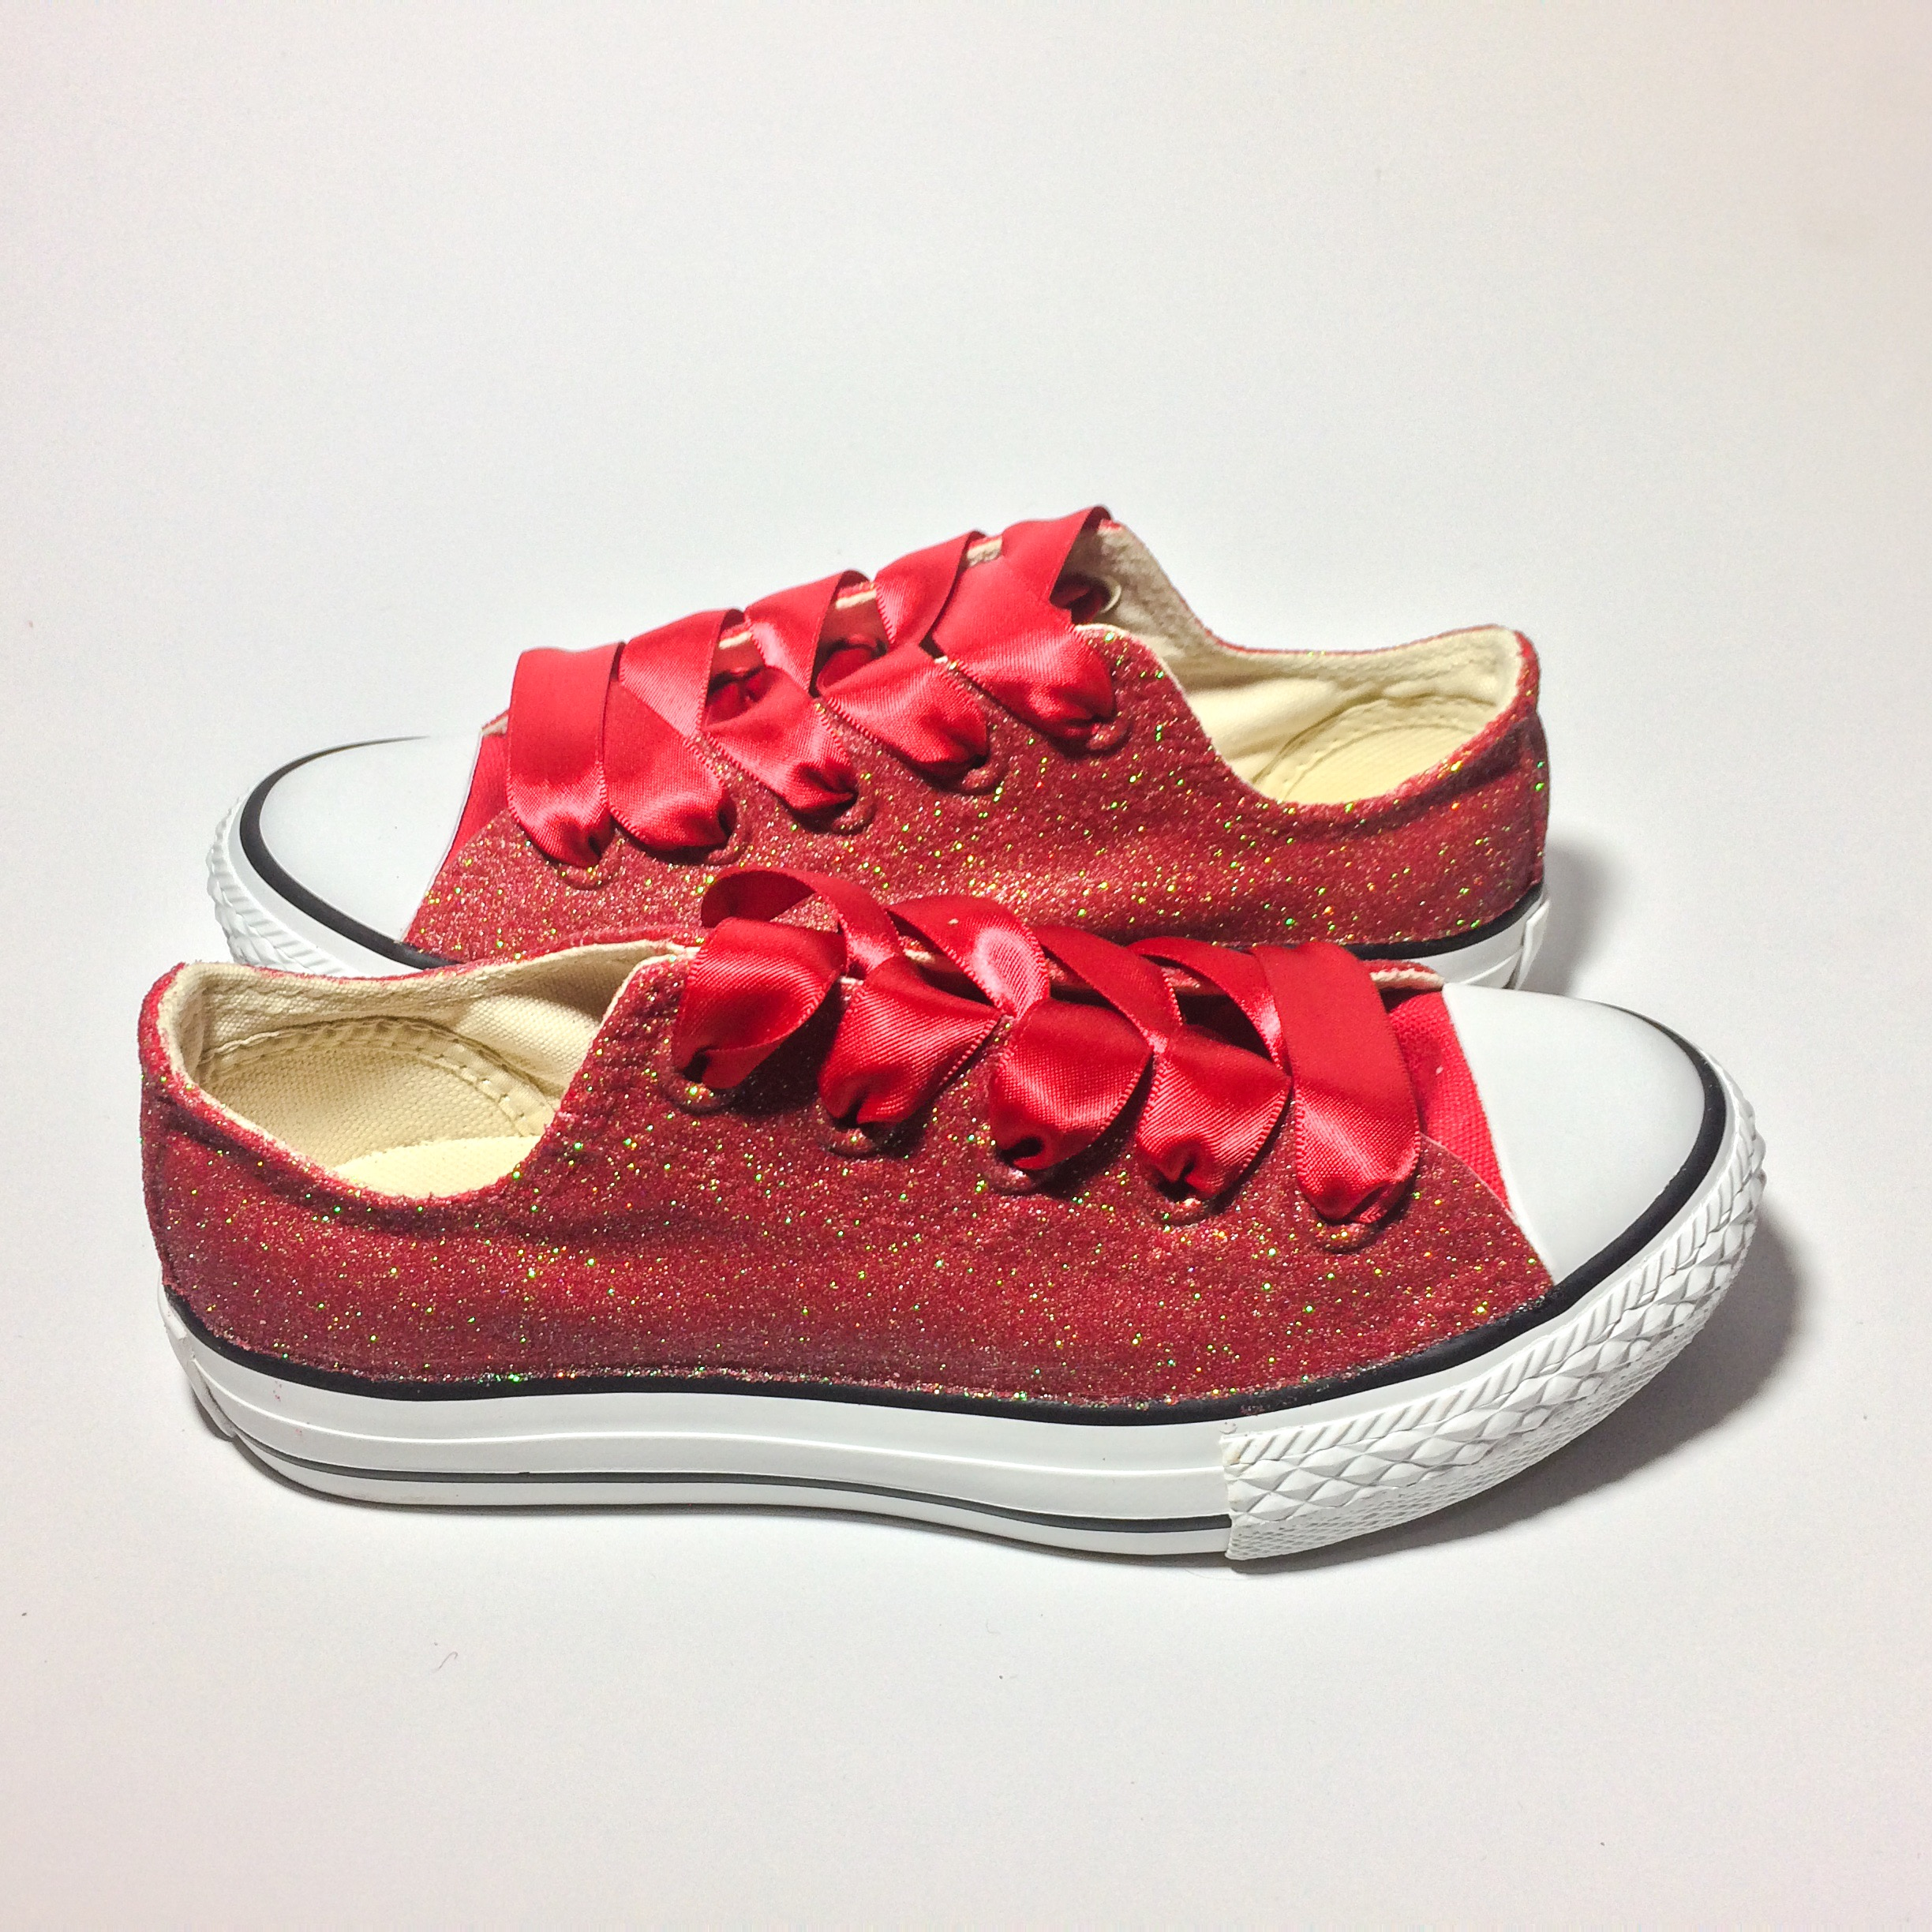 466e2e12e510 Red Glitter Ruby Slippers Converse